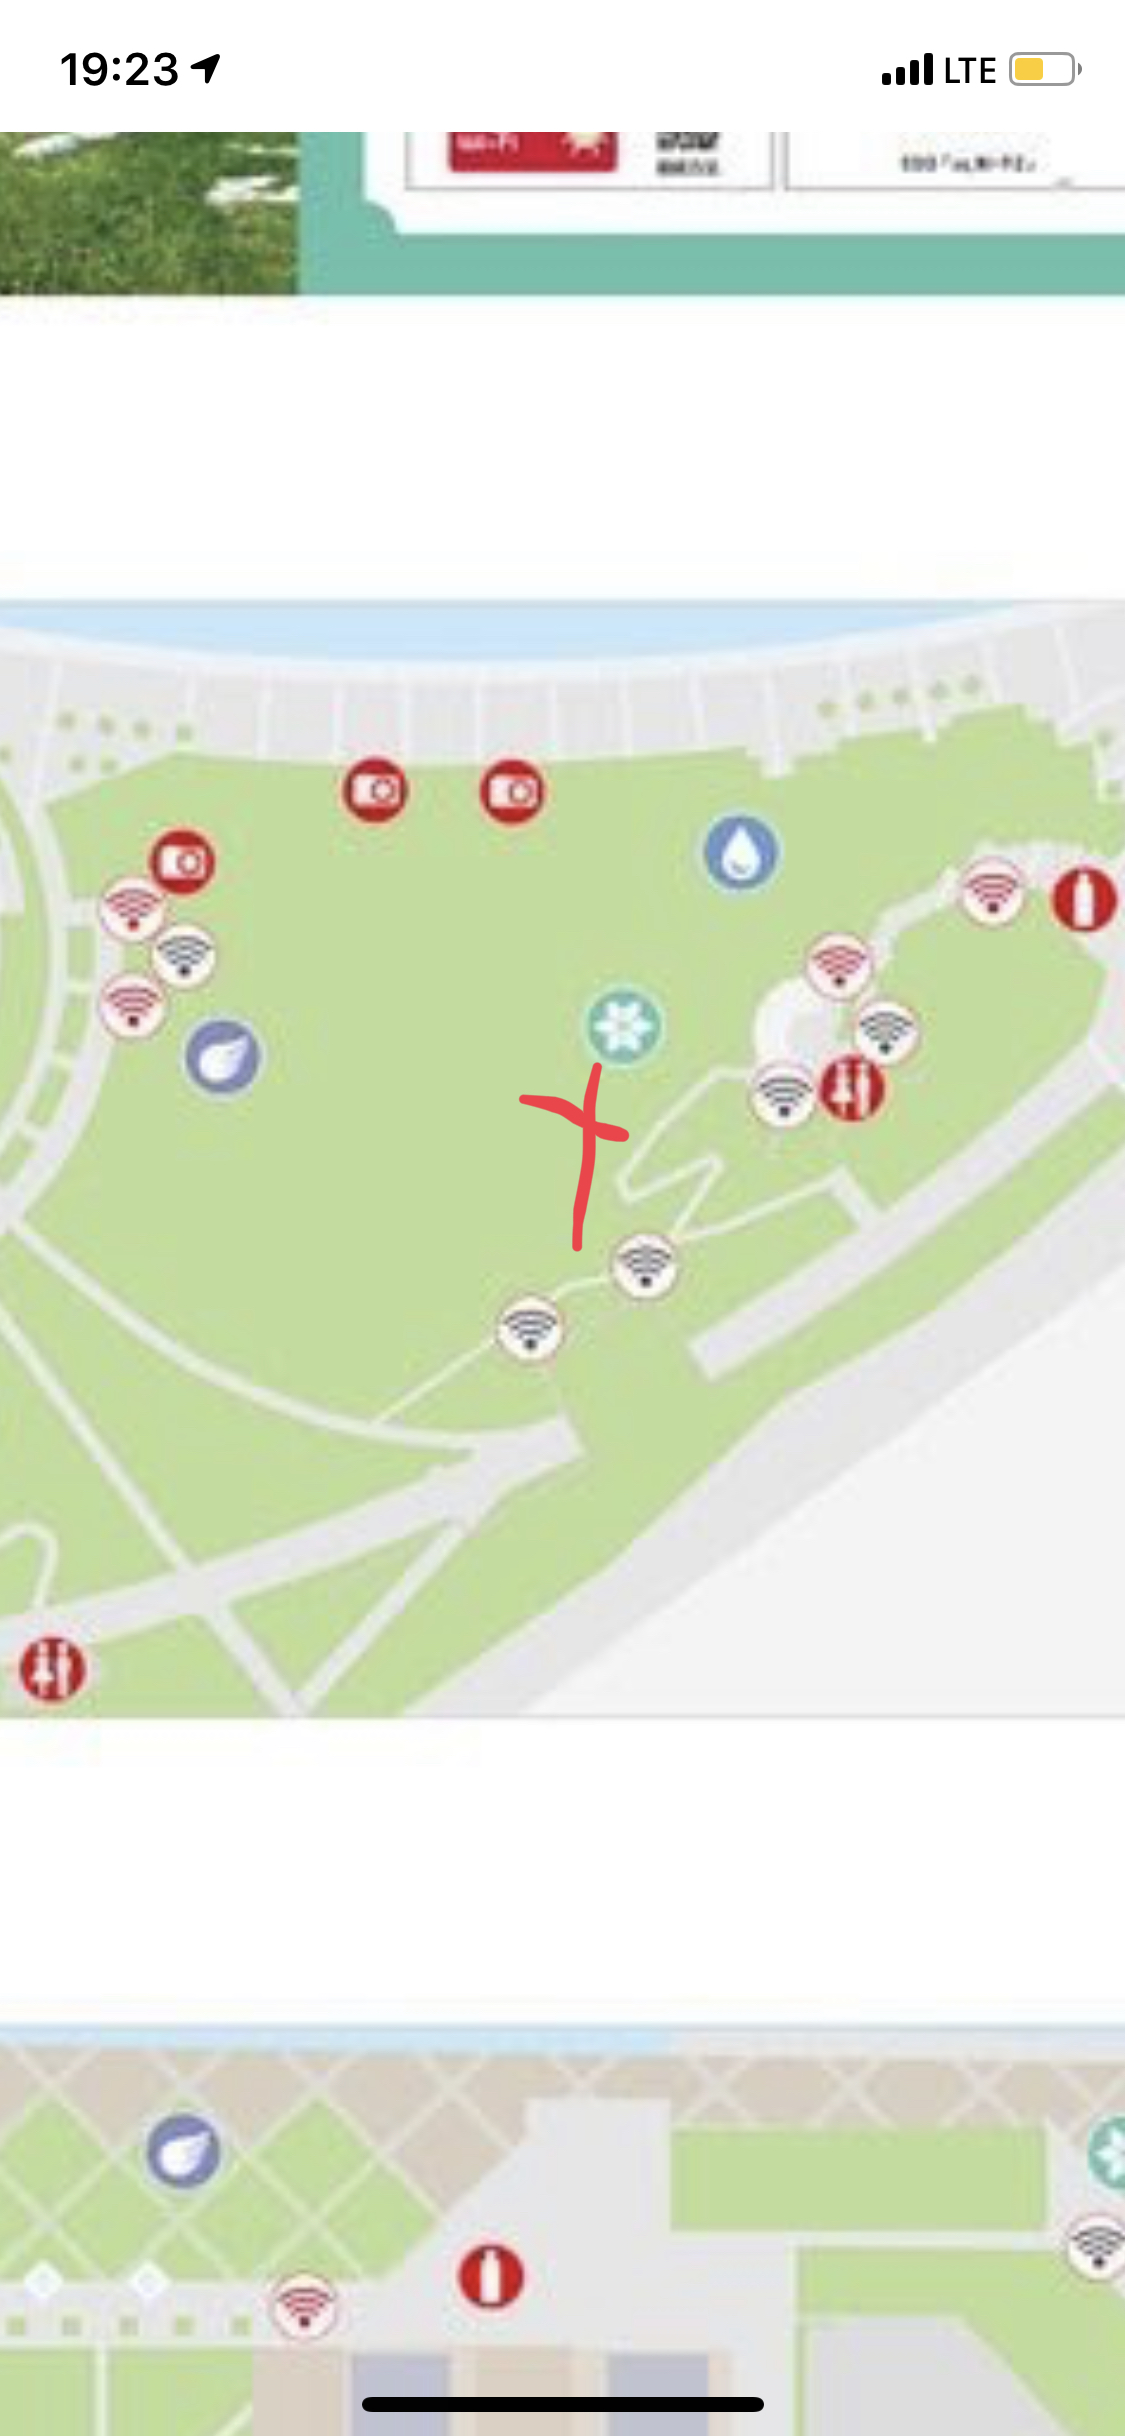 Go Fest Yokohama Tips and Tricks - Location of the big trees - a great farming location